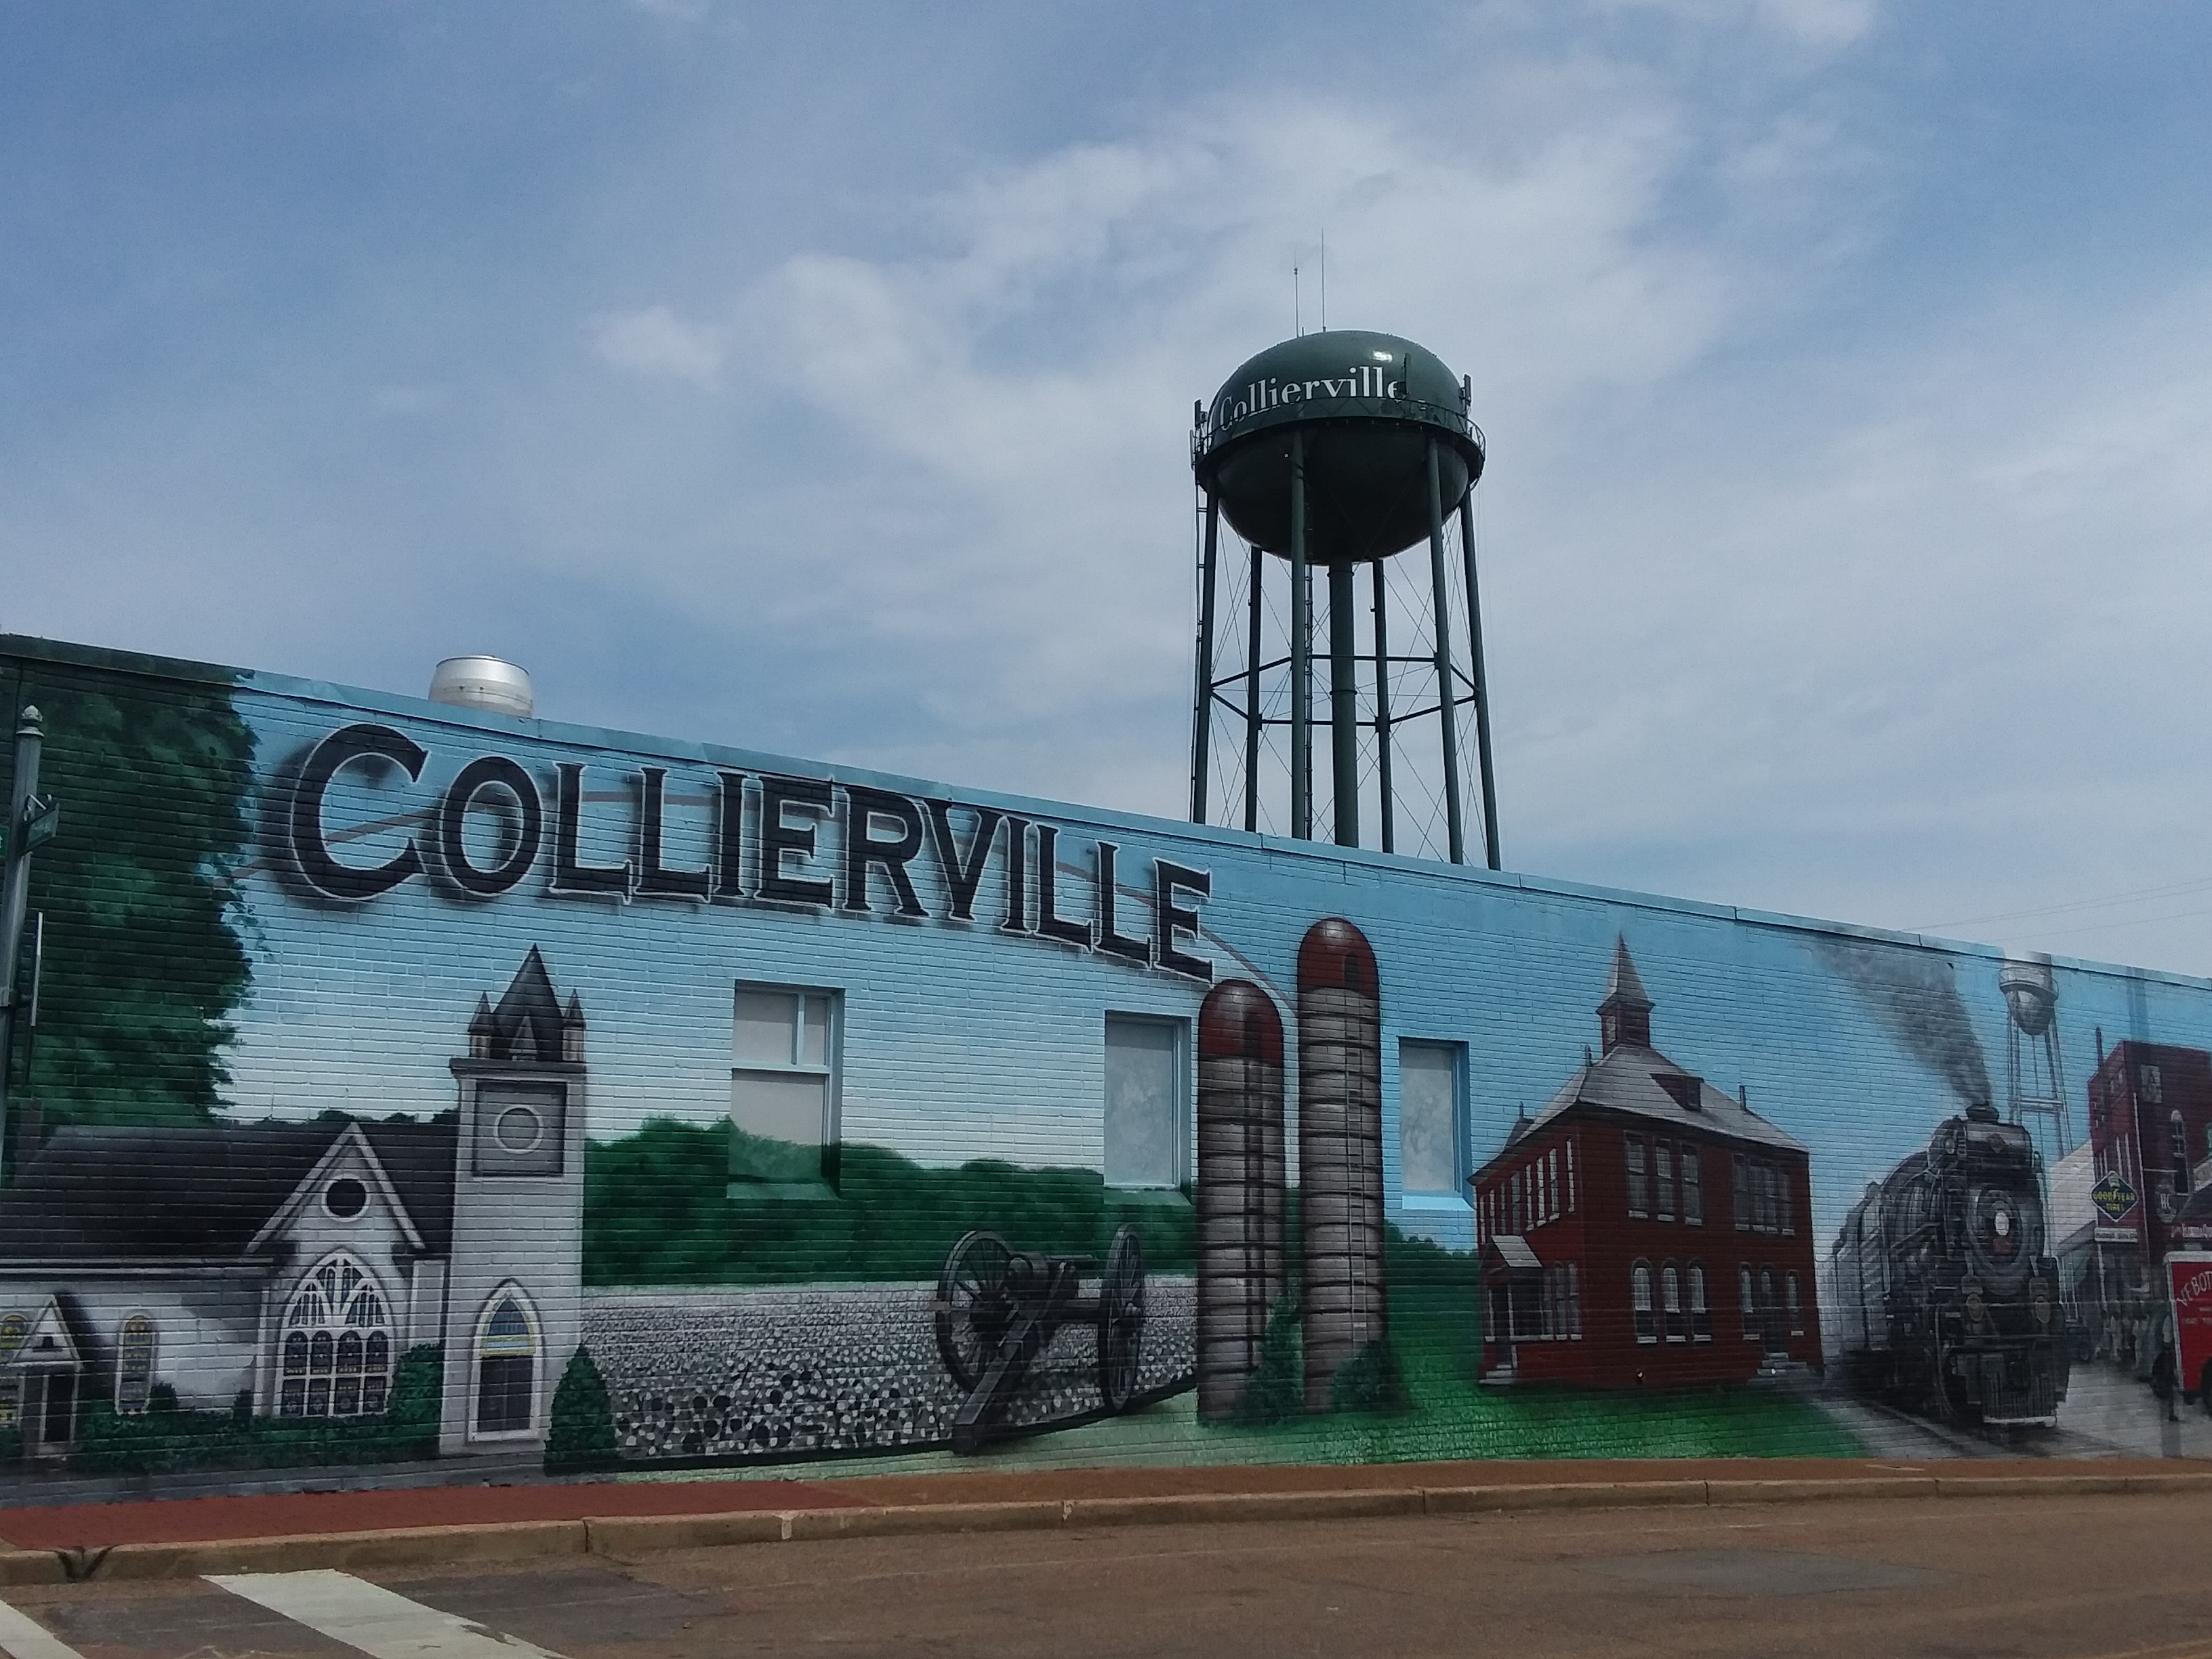 Downtown Collierville